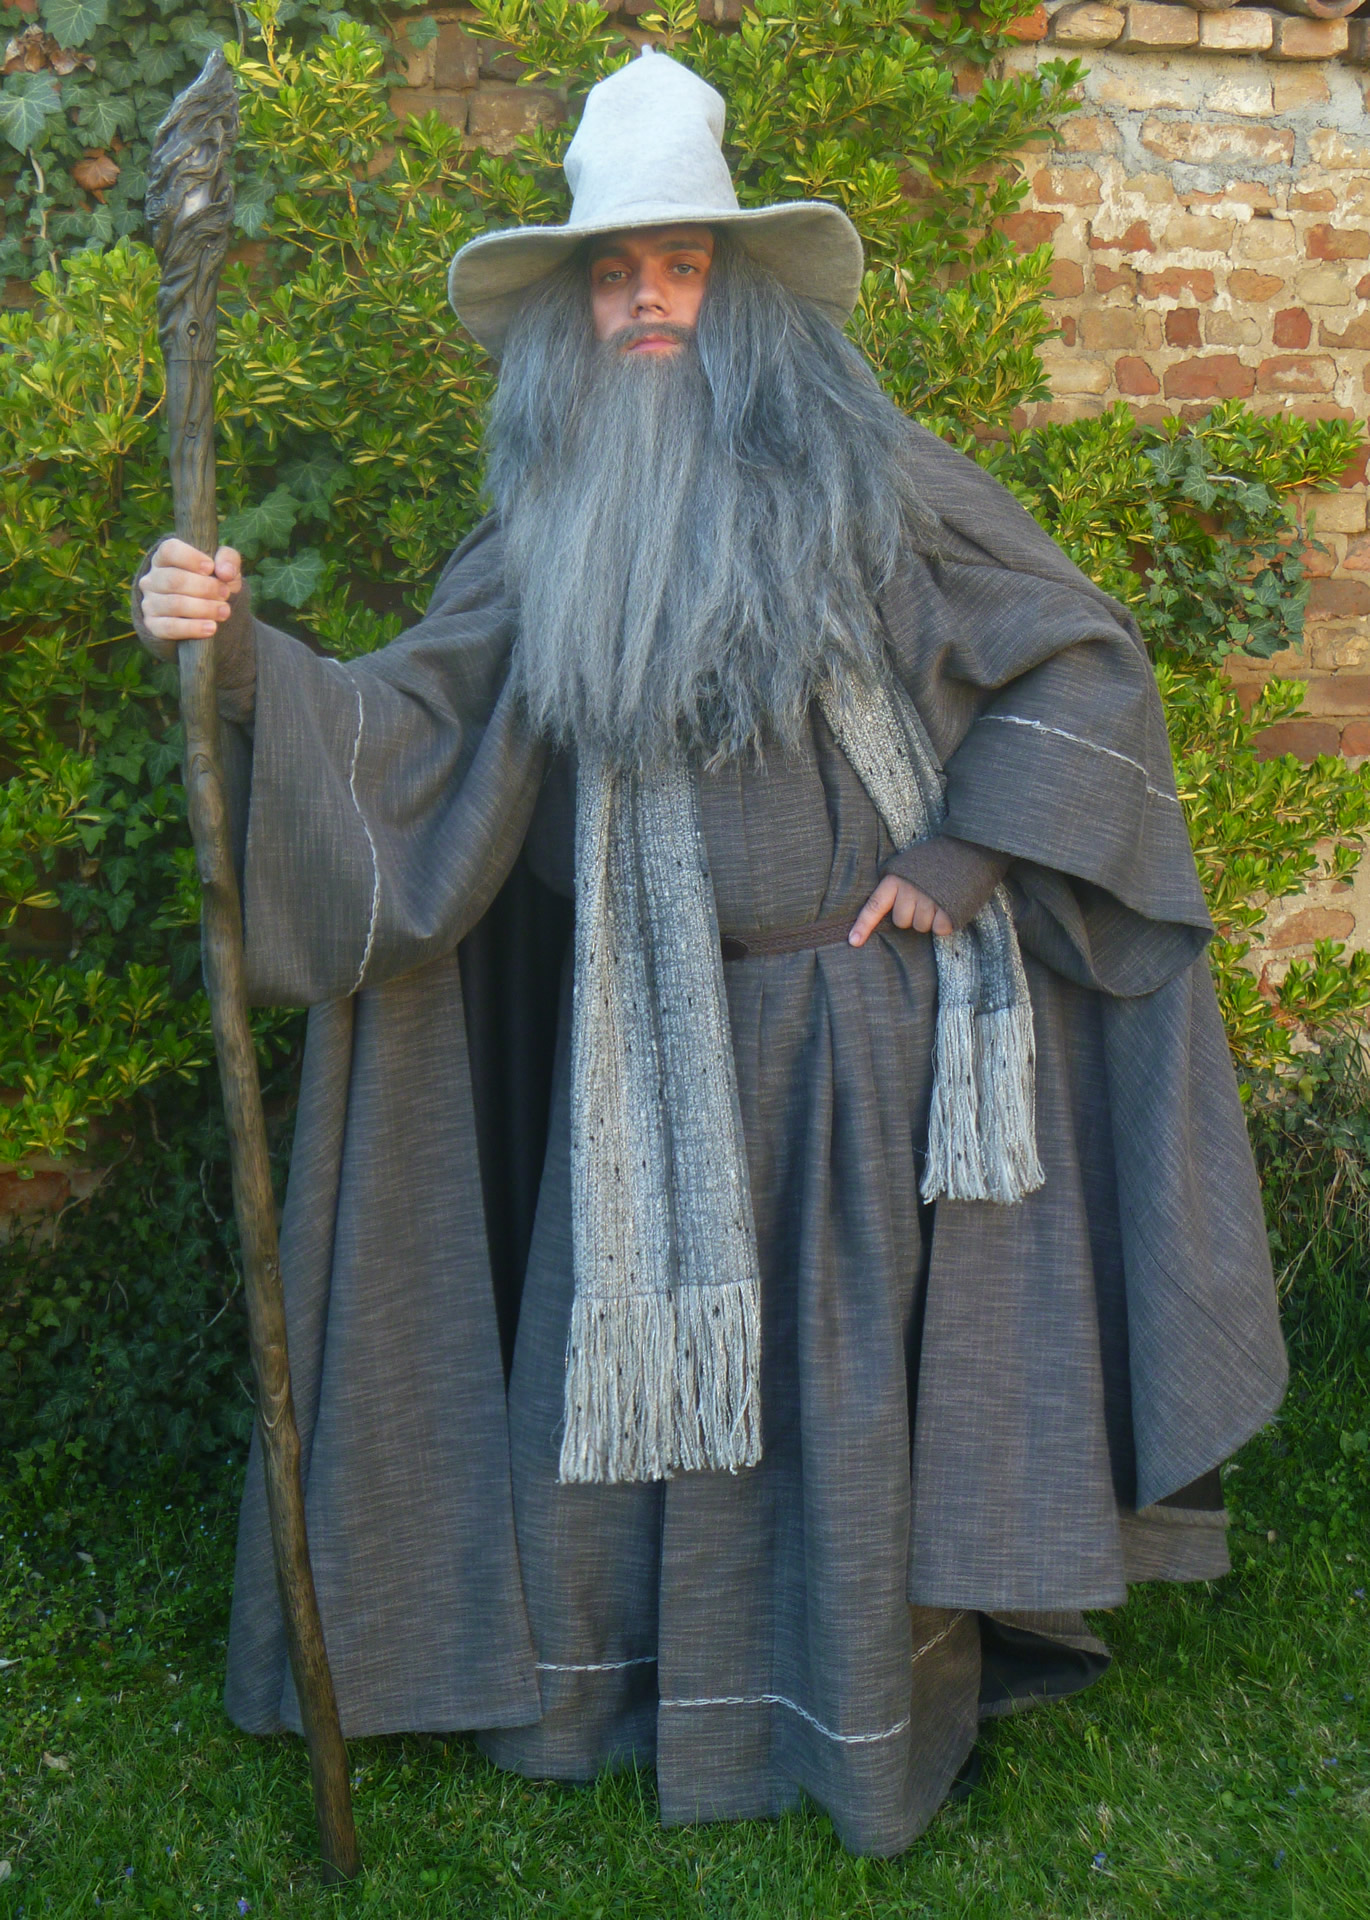 La Quarta Era - Istari Gandalf